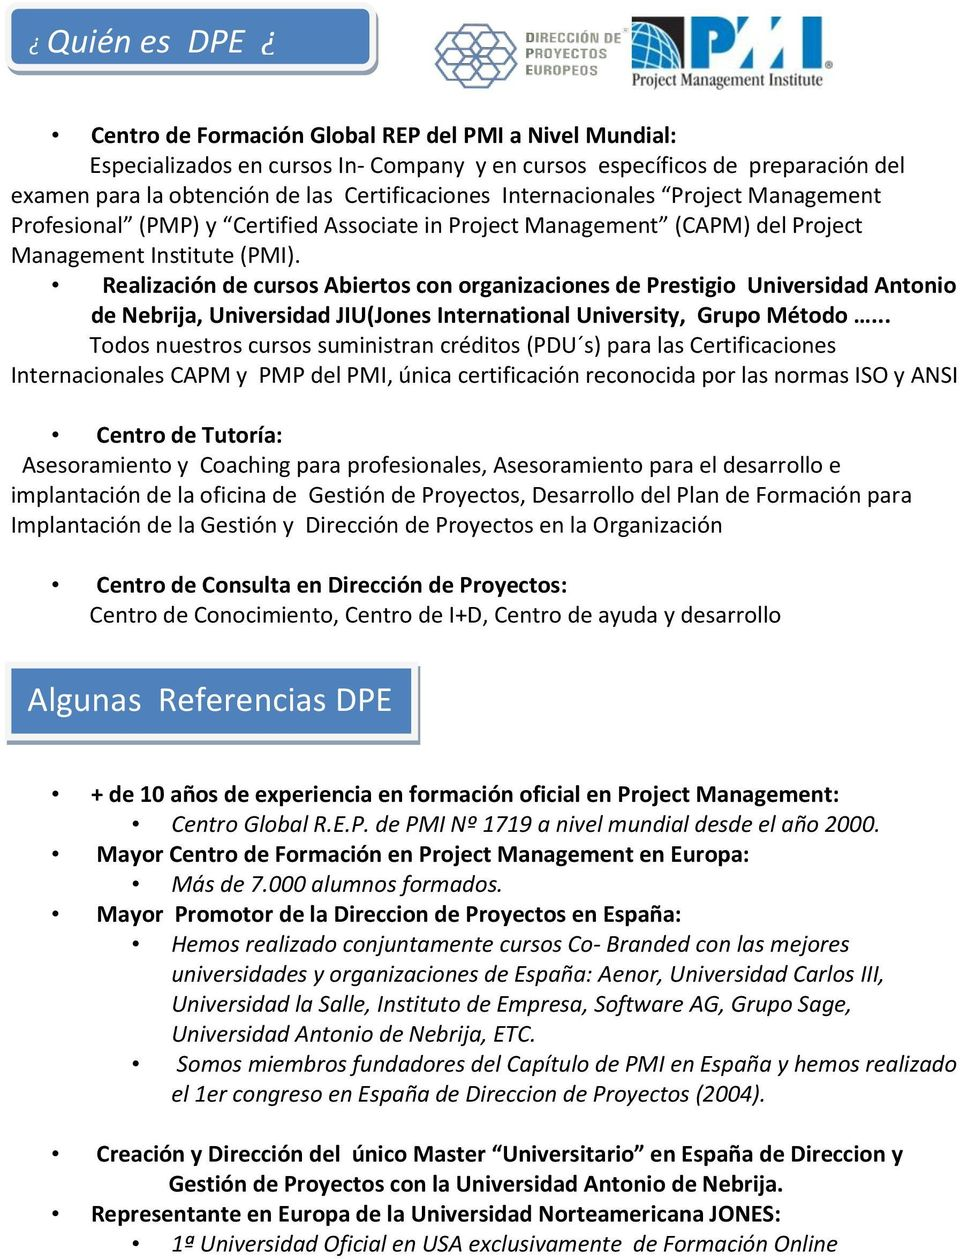 Realización de cursos Abiertos con organizaciones de Prestigio Universidad Antonio de Nebrija, Universidad JIU(Jones International University, Grupo Método.